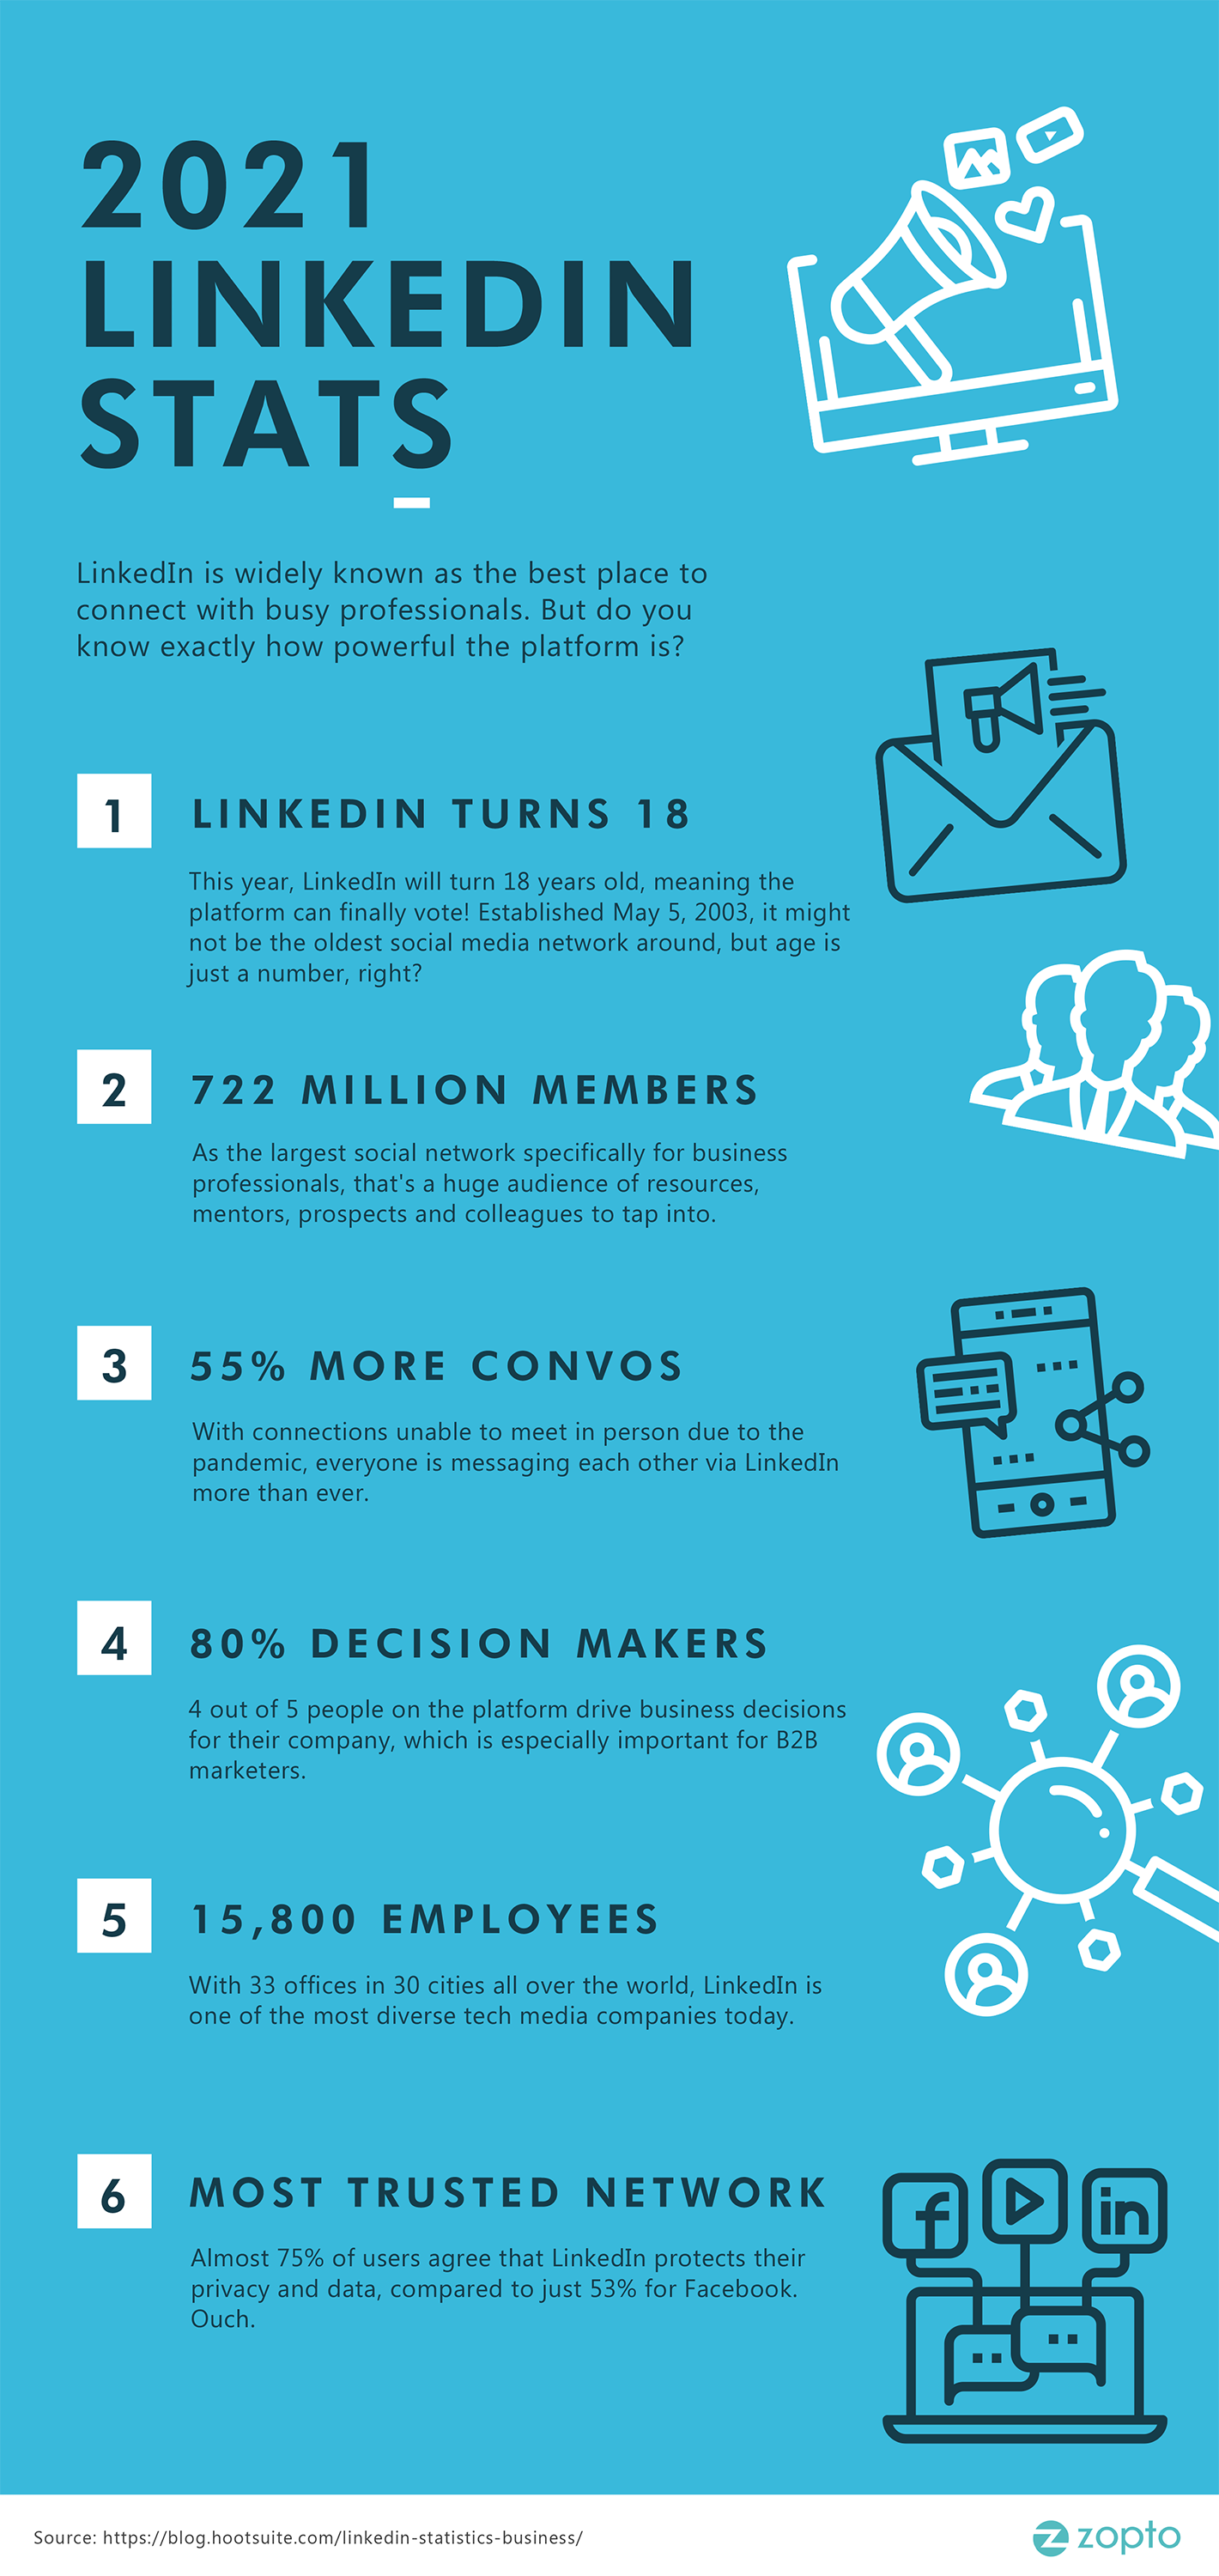 2021 Stats Are In: How Powerful is LinkedIn? 2